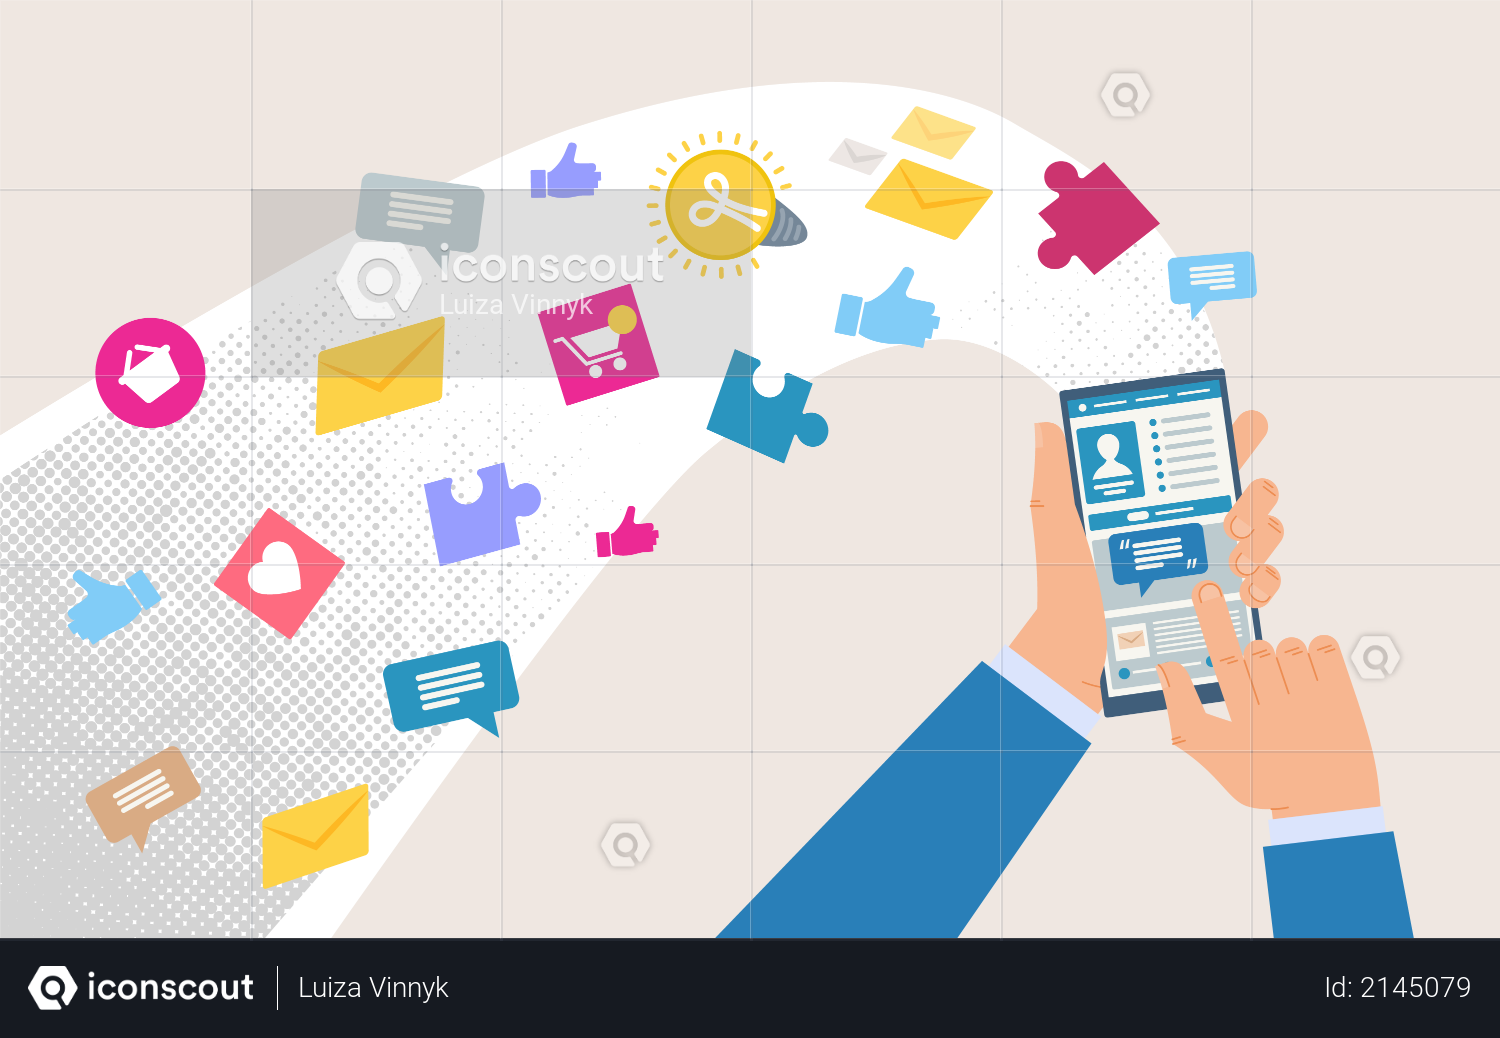 Shopping Online, Communicating, Working with Mobile Phone Apps Illustration